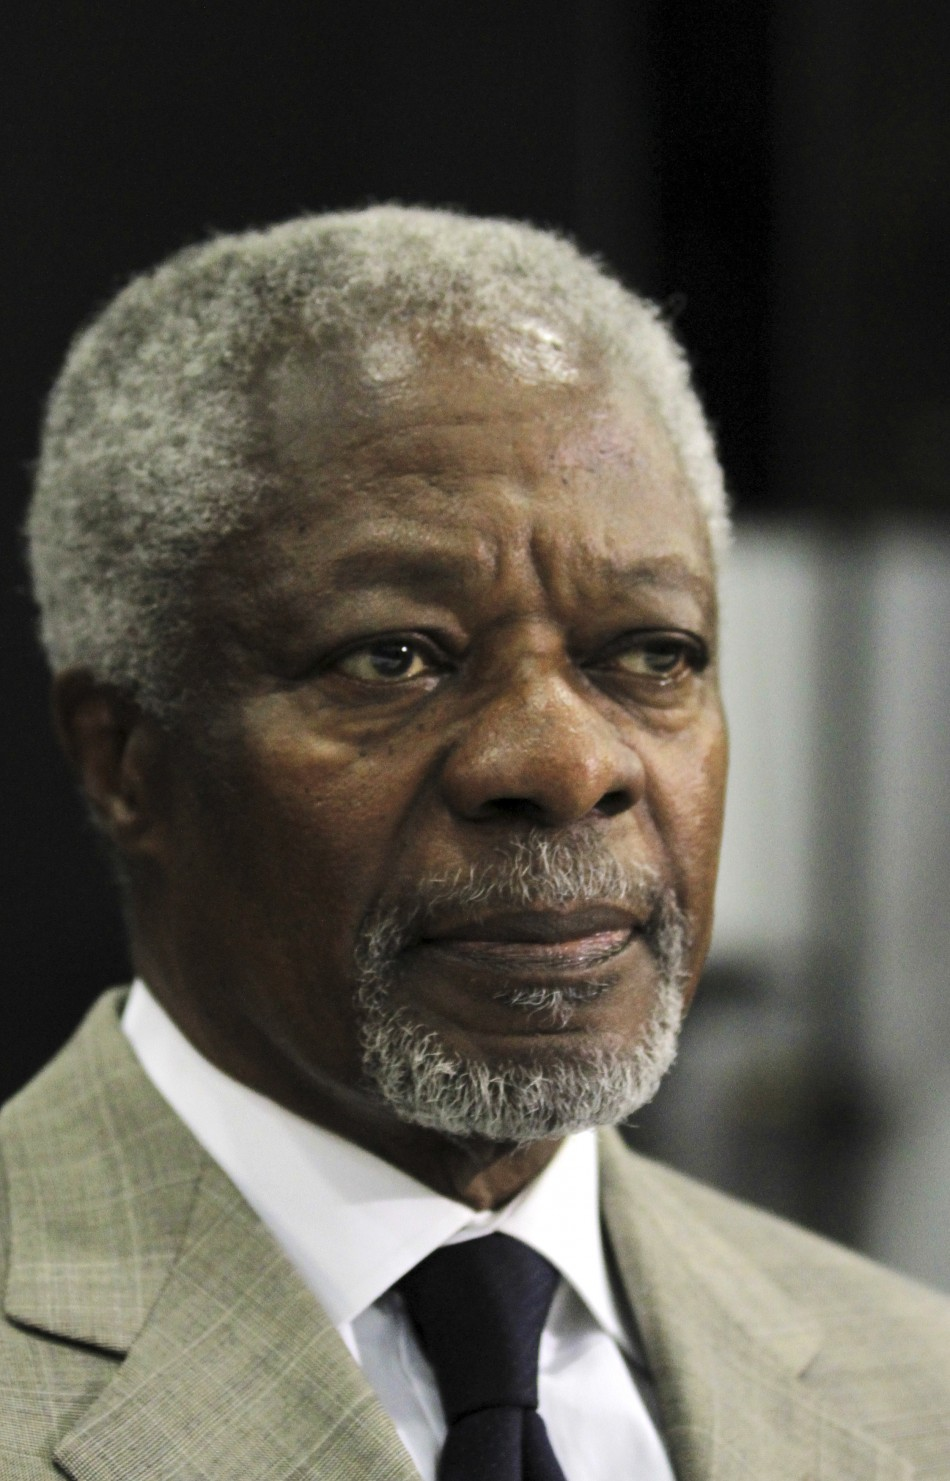 Former UN secretary-general Kofi Annan to serve as special envoy on Syrian crsis